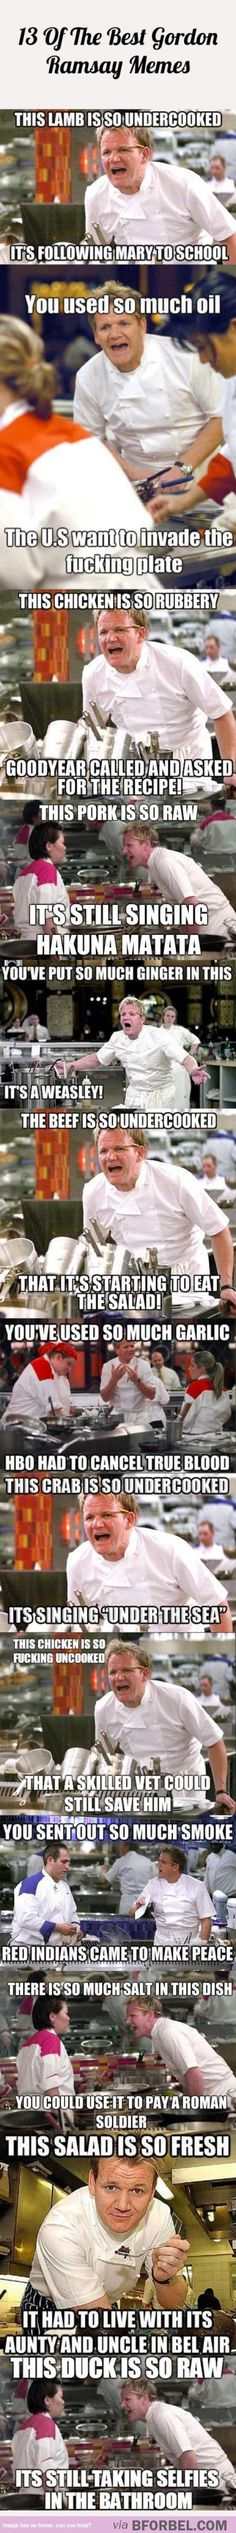 Gordon Ramsey, savage as ever!